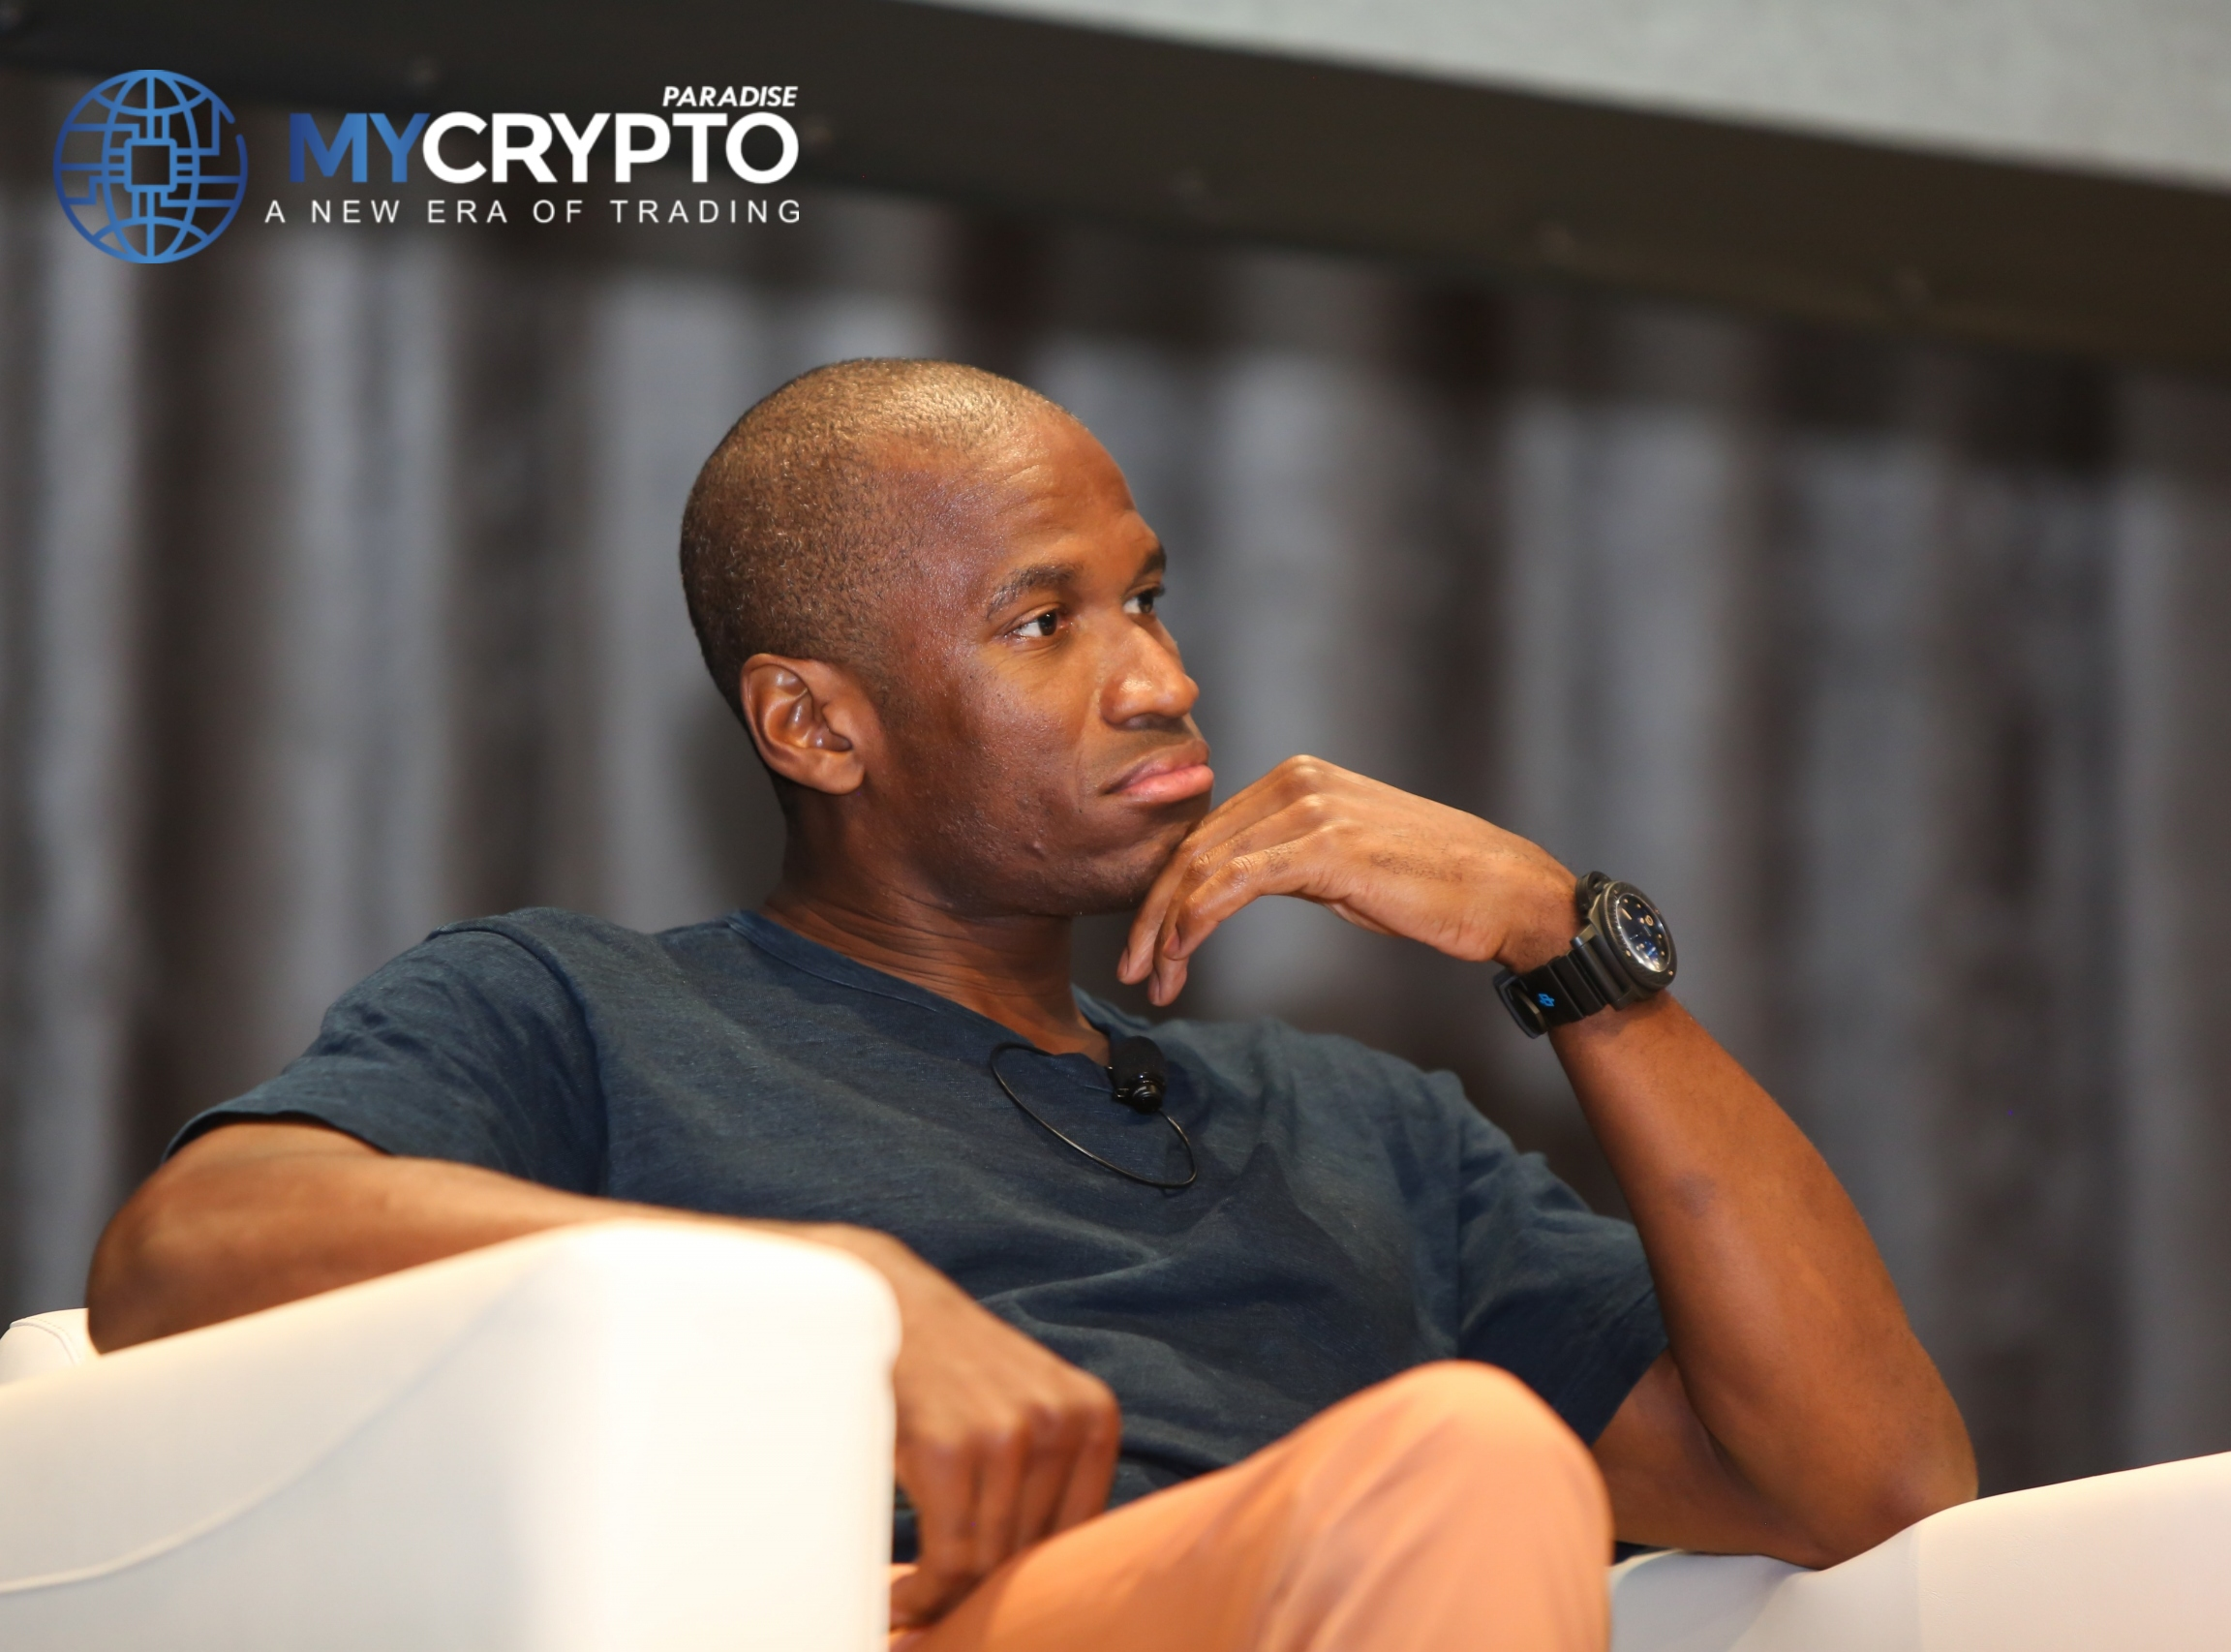 BitMEX Co-Founder Arthur Hayes to Surrender Voluntarily With $10 Million Bail